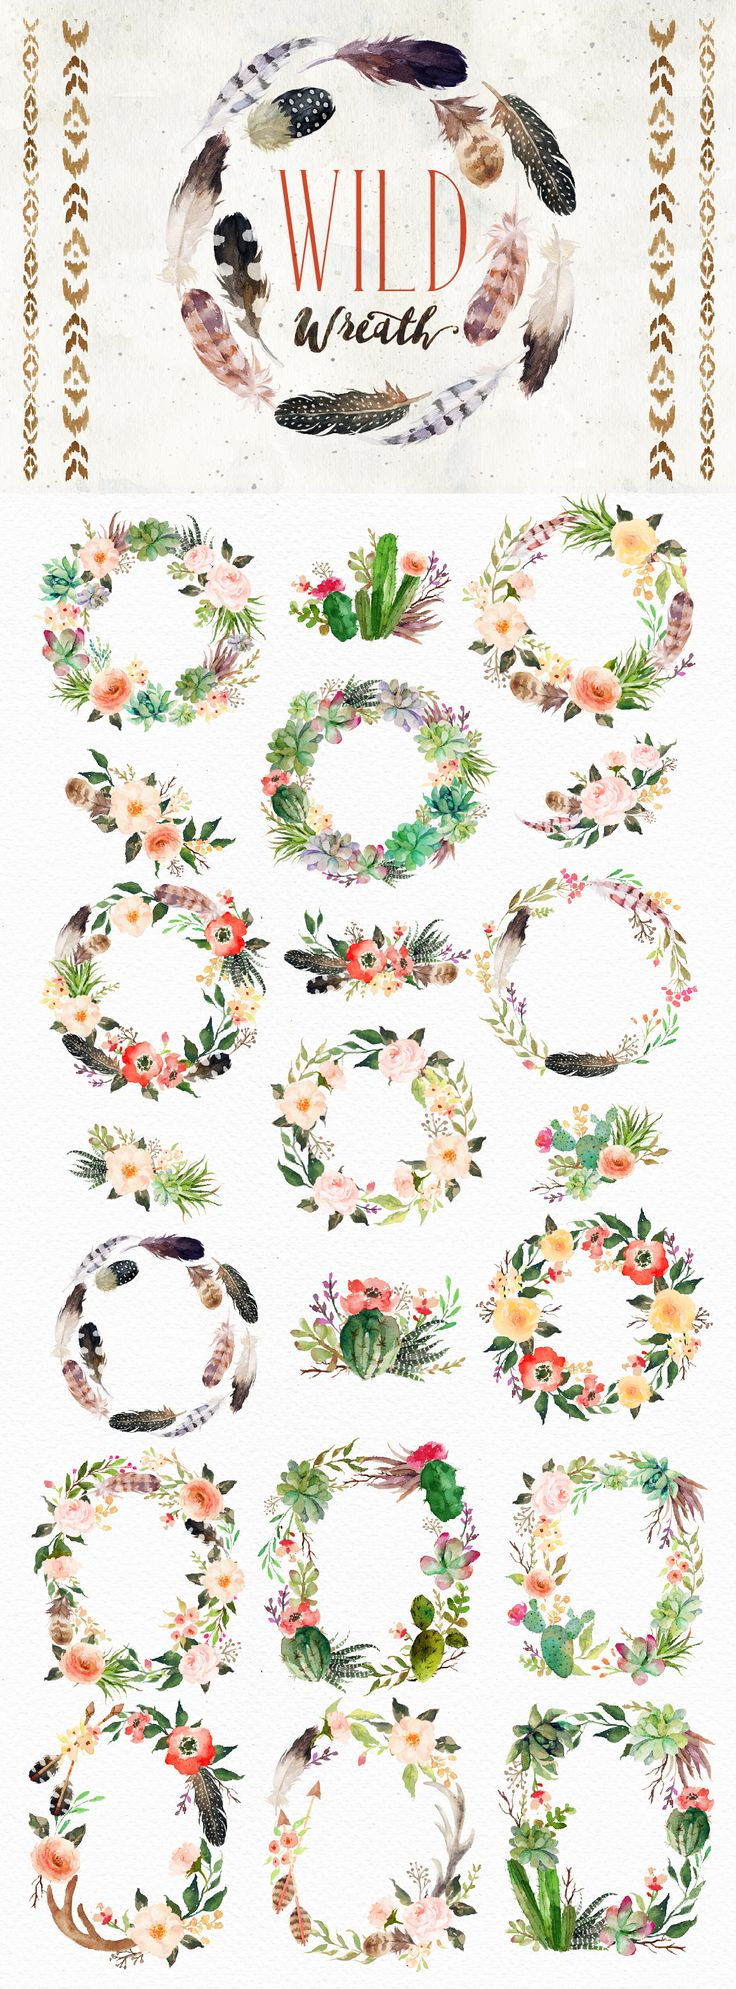 1000+ images about Need To Paint Some Wreaths on Pinterest.